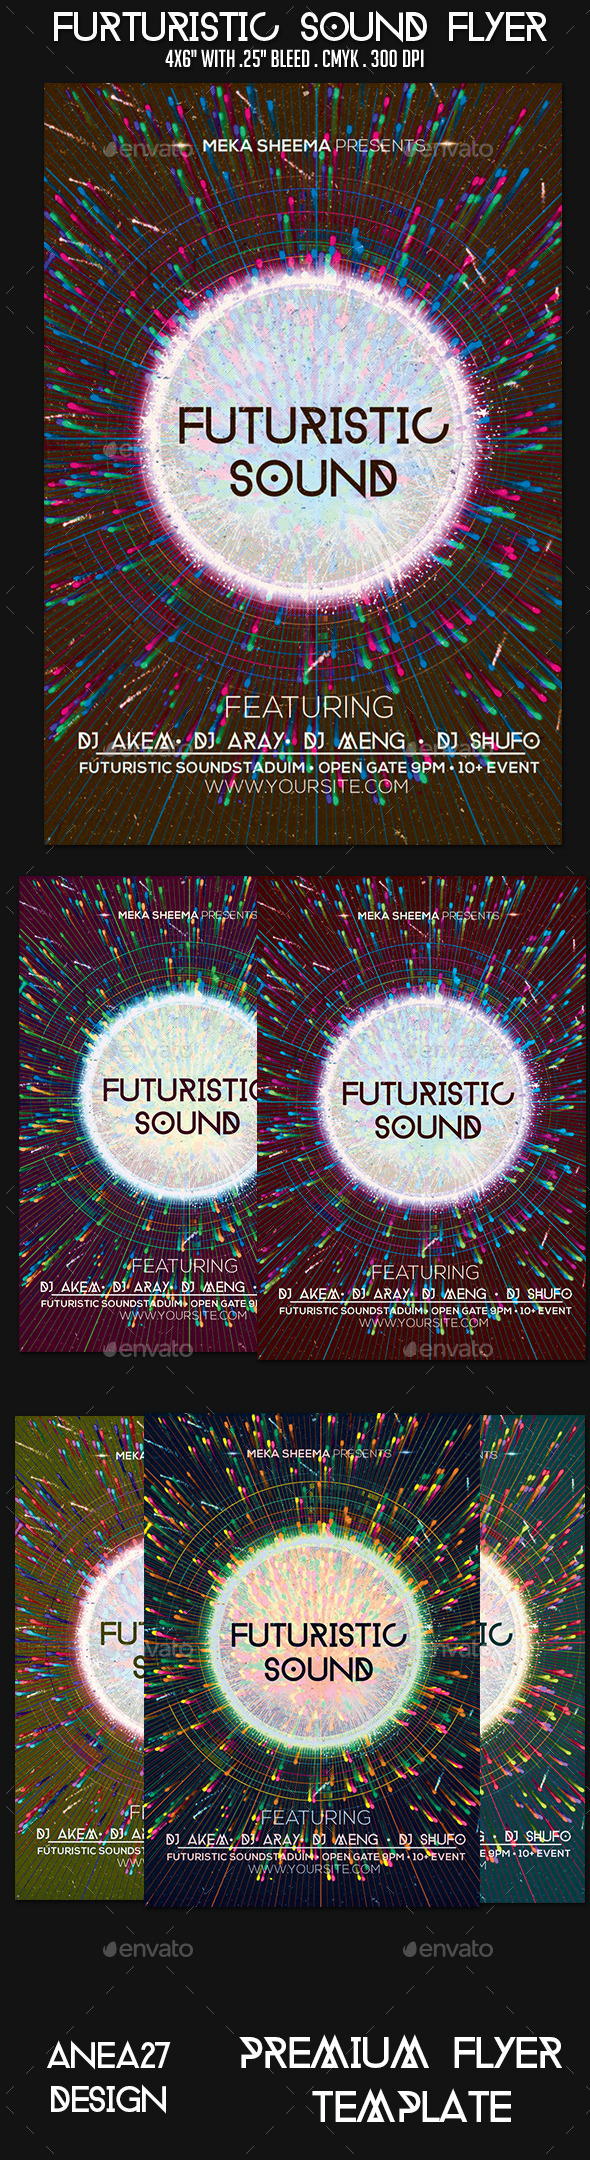 Futuristic Sound Flyer - Clubs & Parties Events